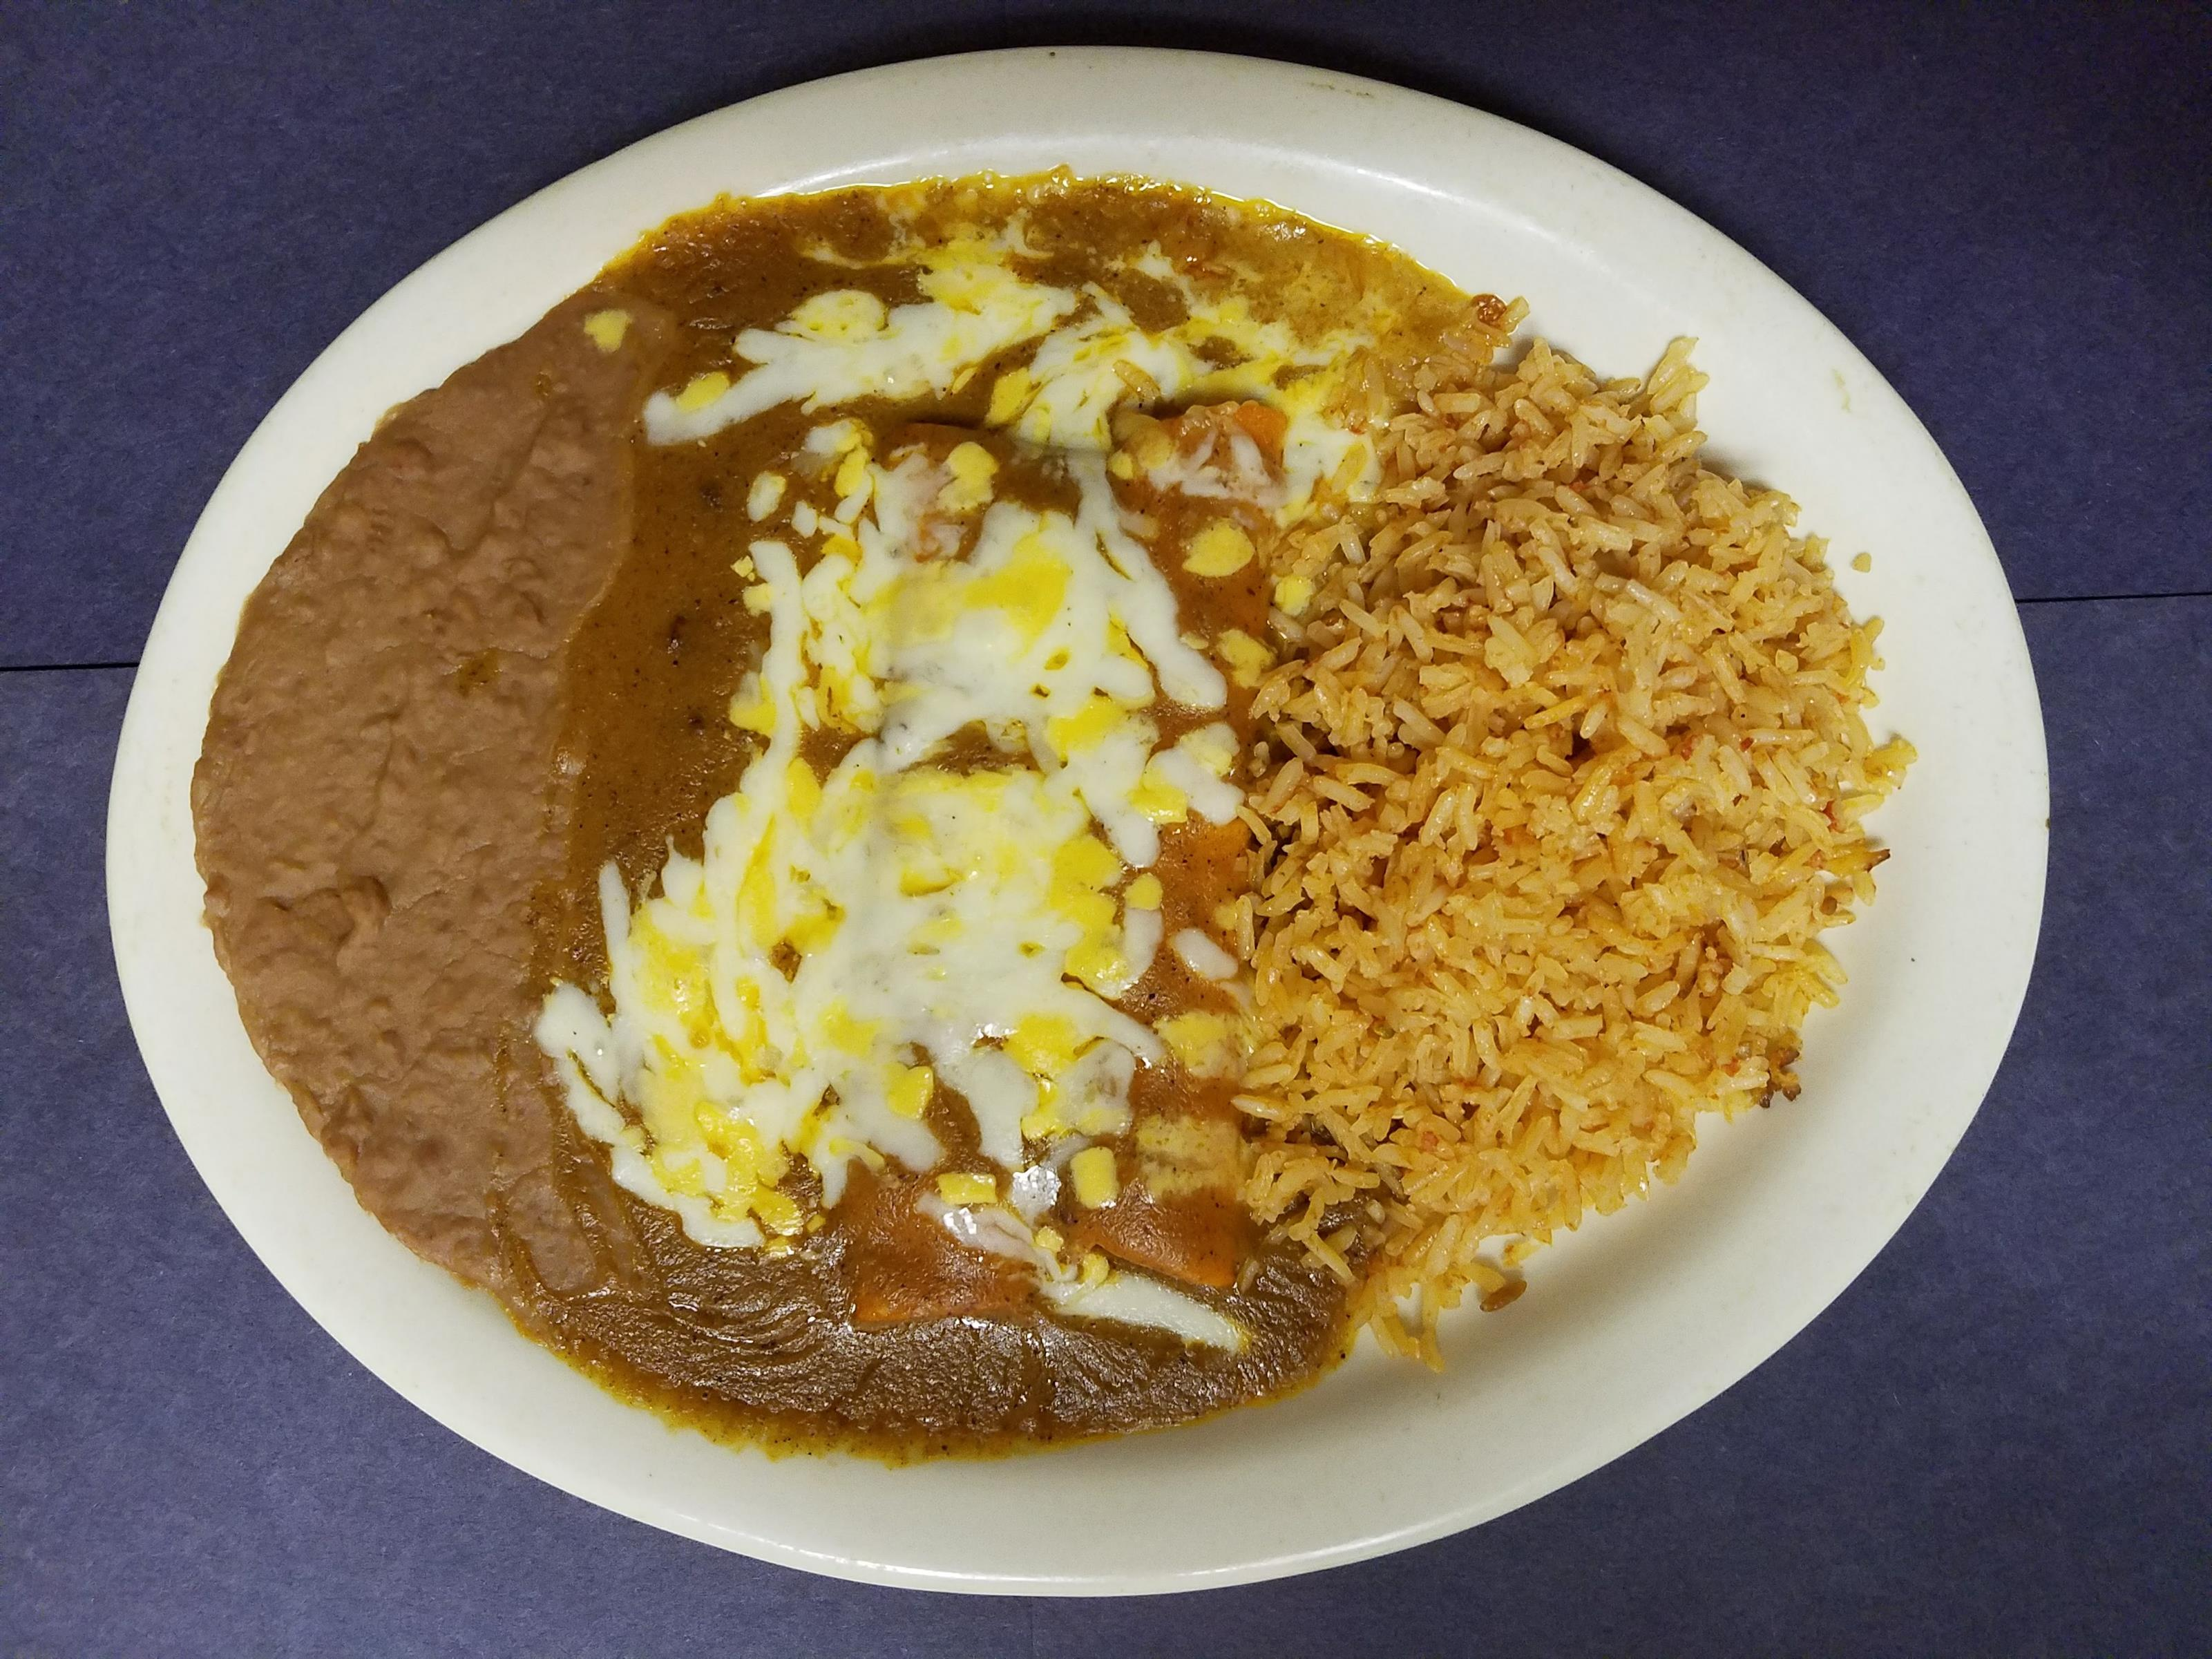 plate of refried beans, chicken with cheese on top, and rice